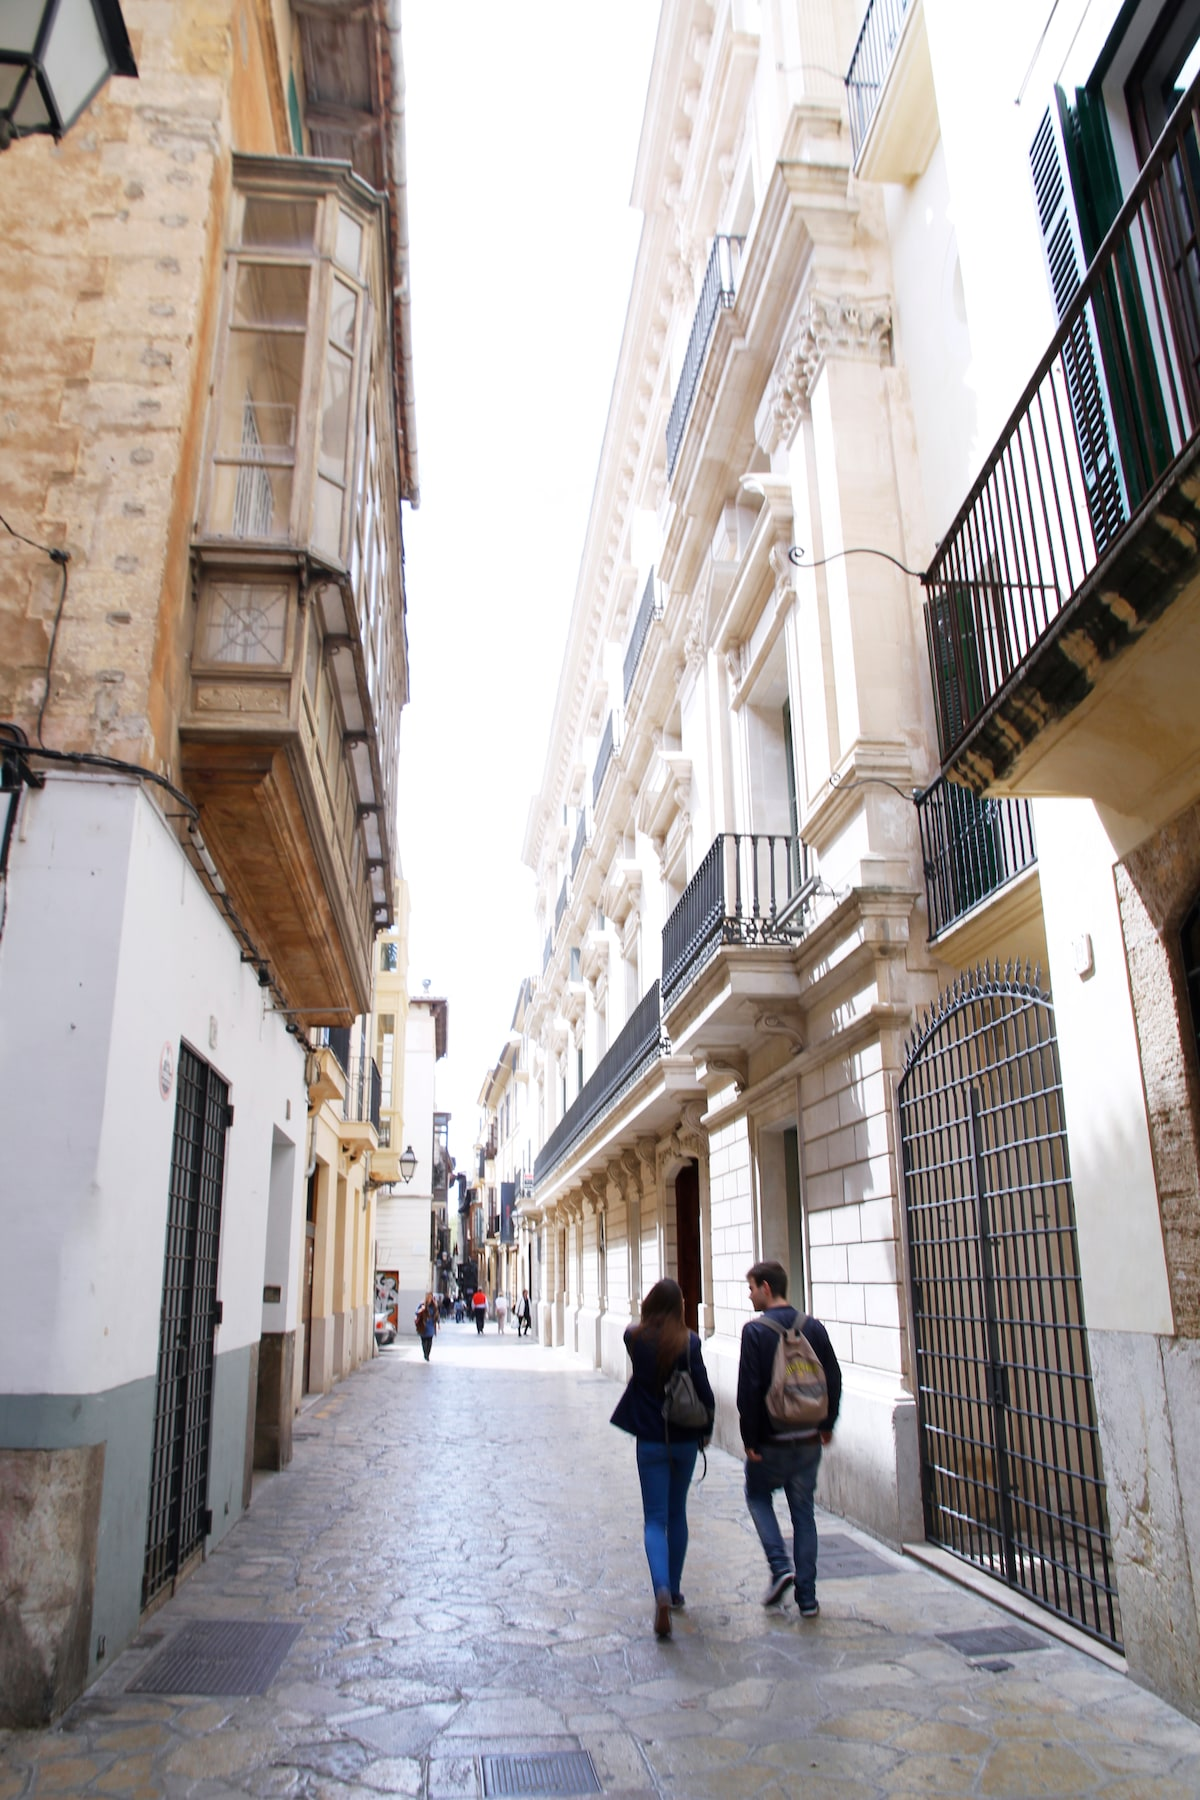 Carrer Sant Jaume. The main street right next to the apartment.